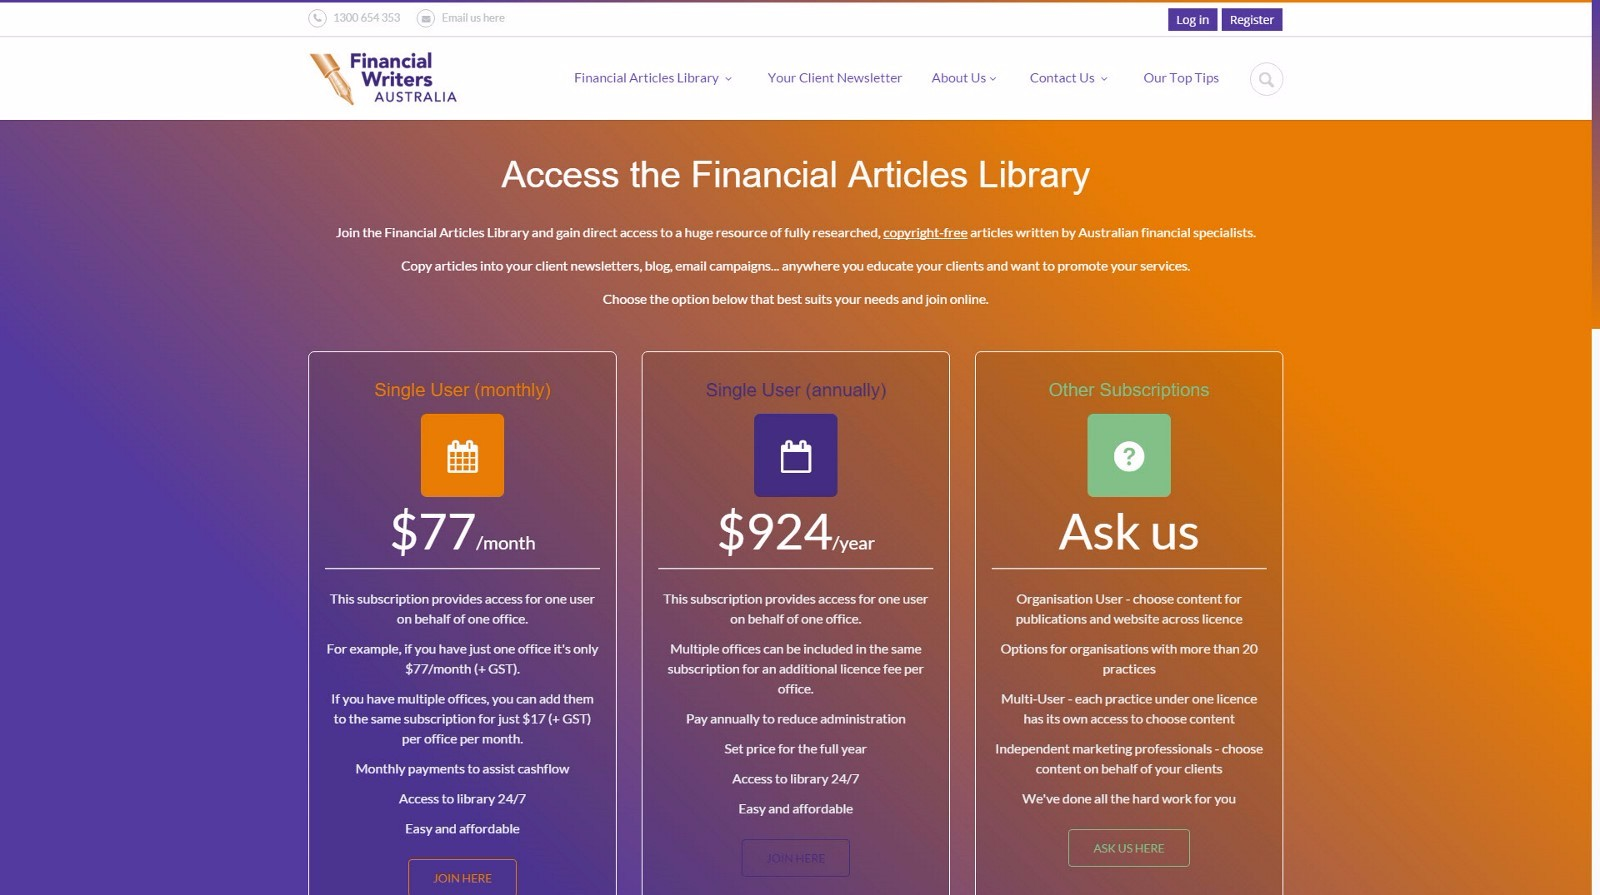 financialwrite3 Financial Writers Australia